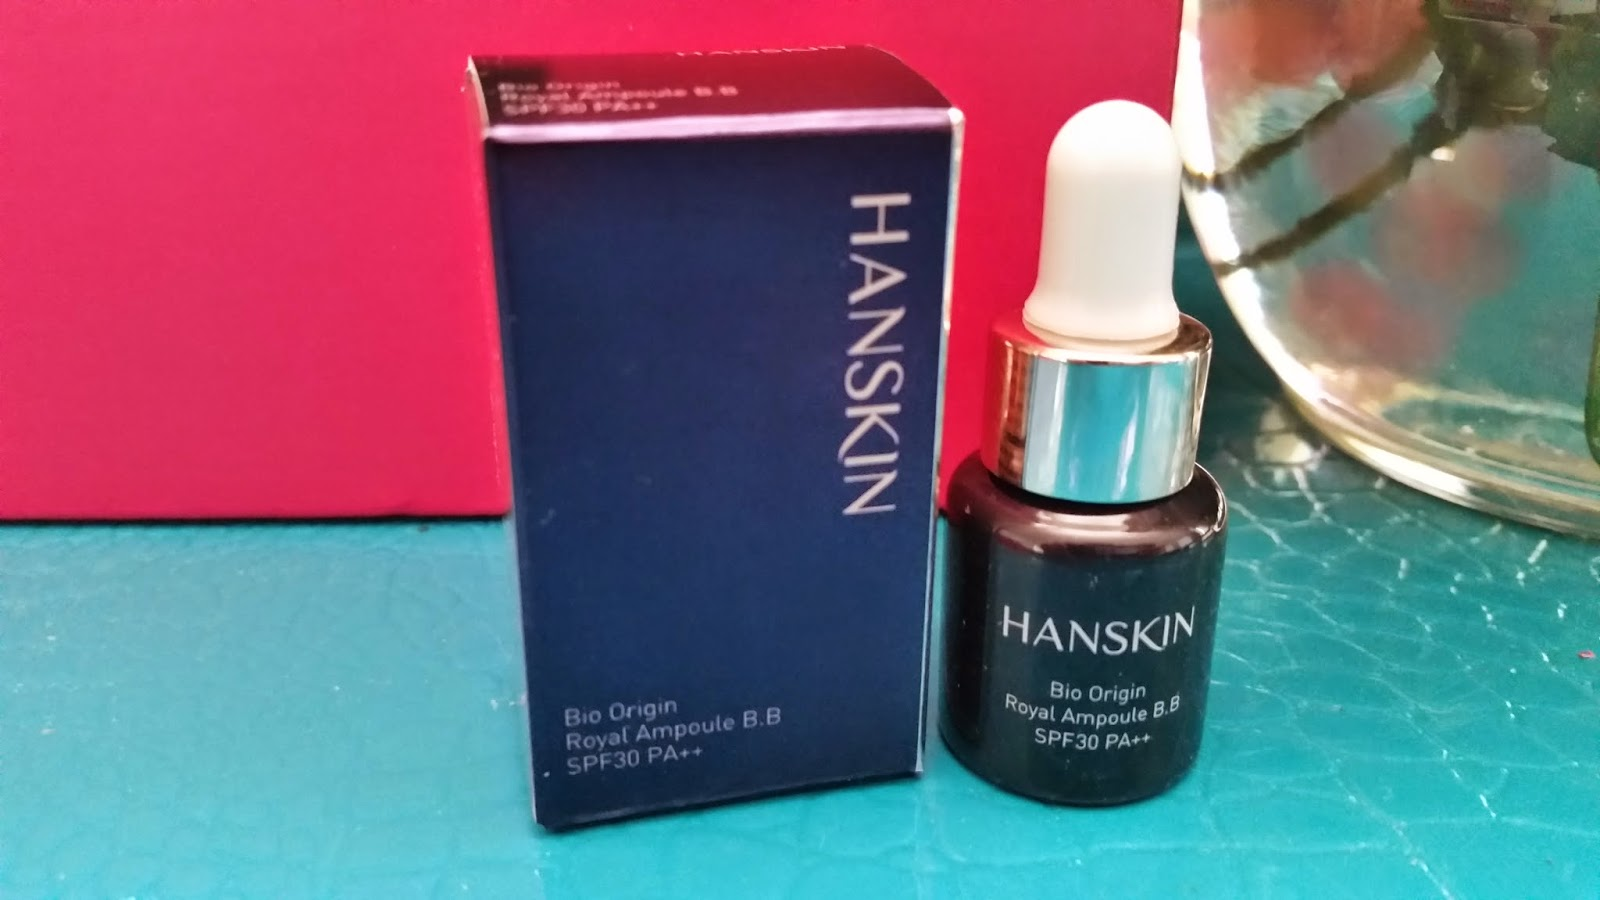 Hanskin Bio Origin Royal Ampoule BB SPF 30 PA++